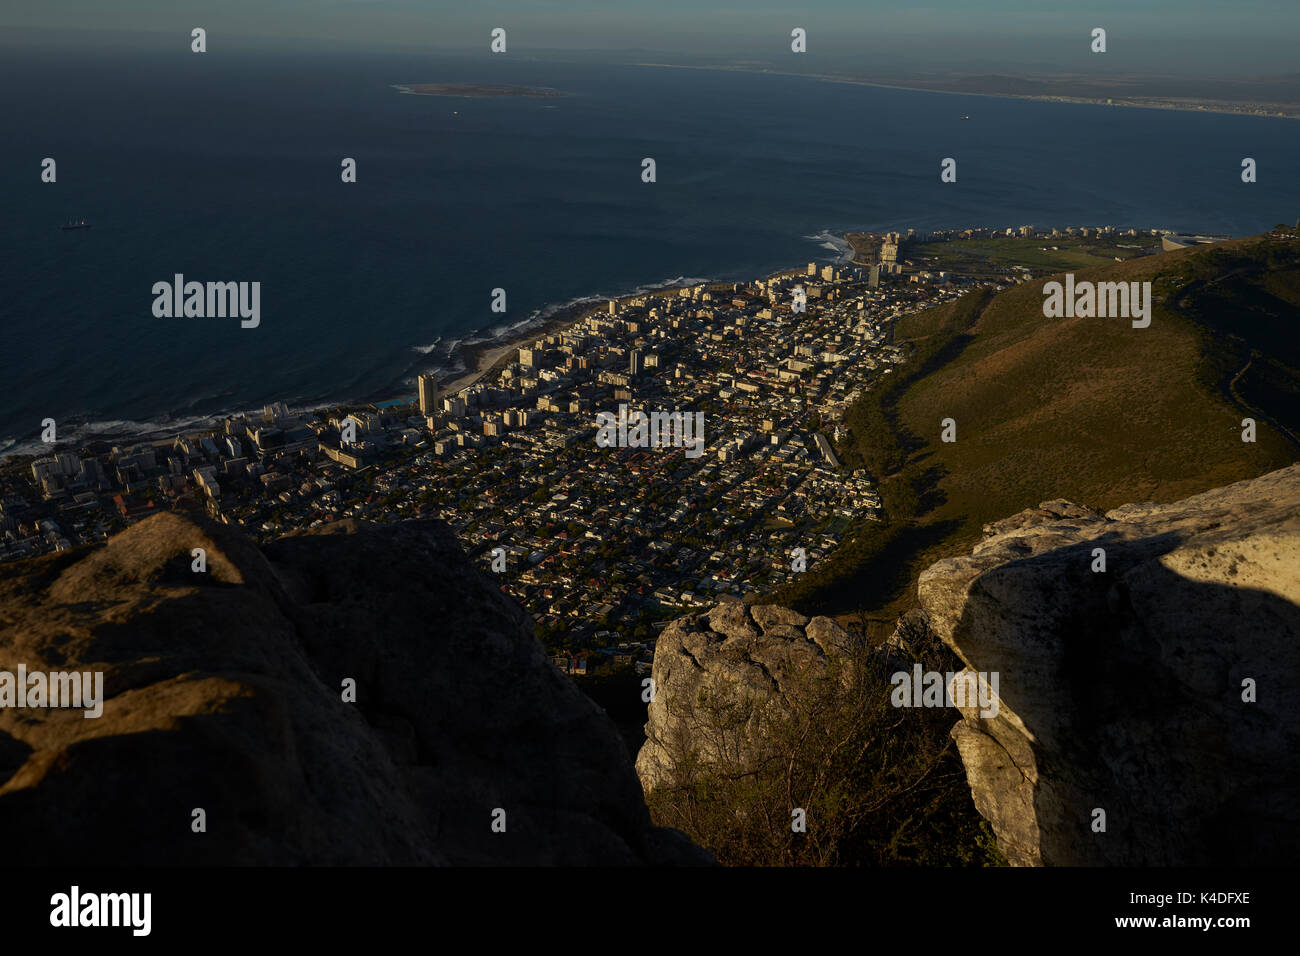 Aerial View over Cape Town in the evening light - Stock Image